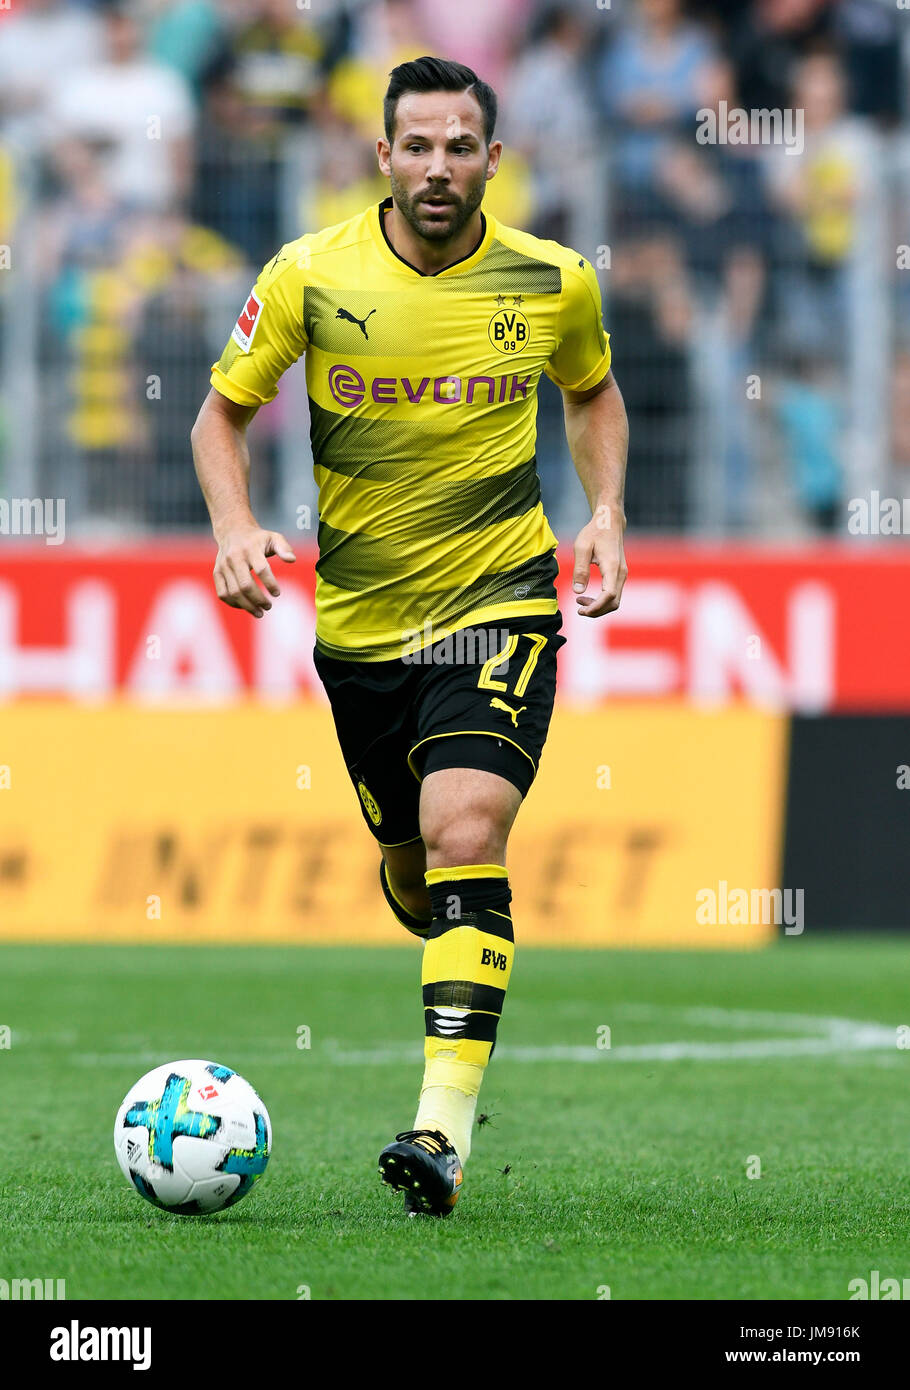 Friendly match, Rot-Weiss Essen vs Bor. Dortmund; Gonzalo Castro from Borussia Dortmund. - Stock Image